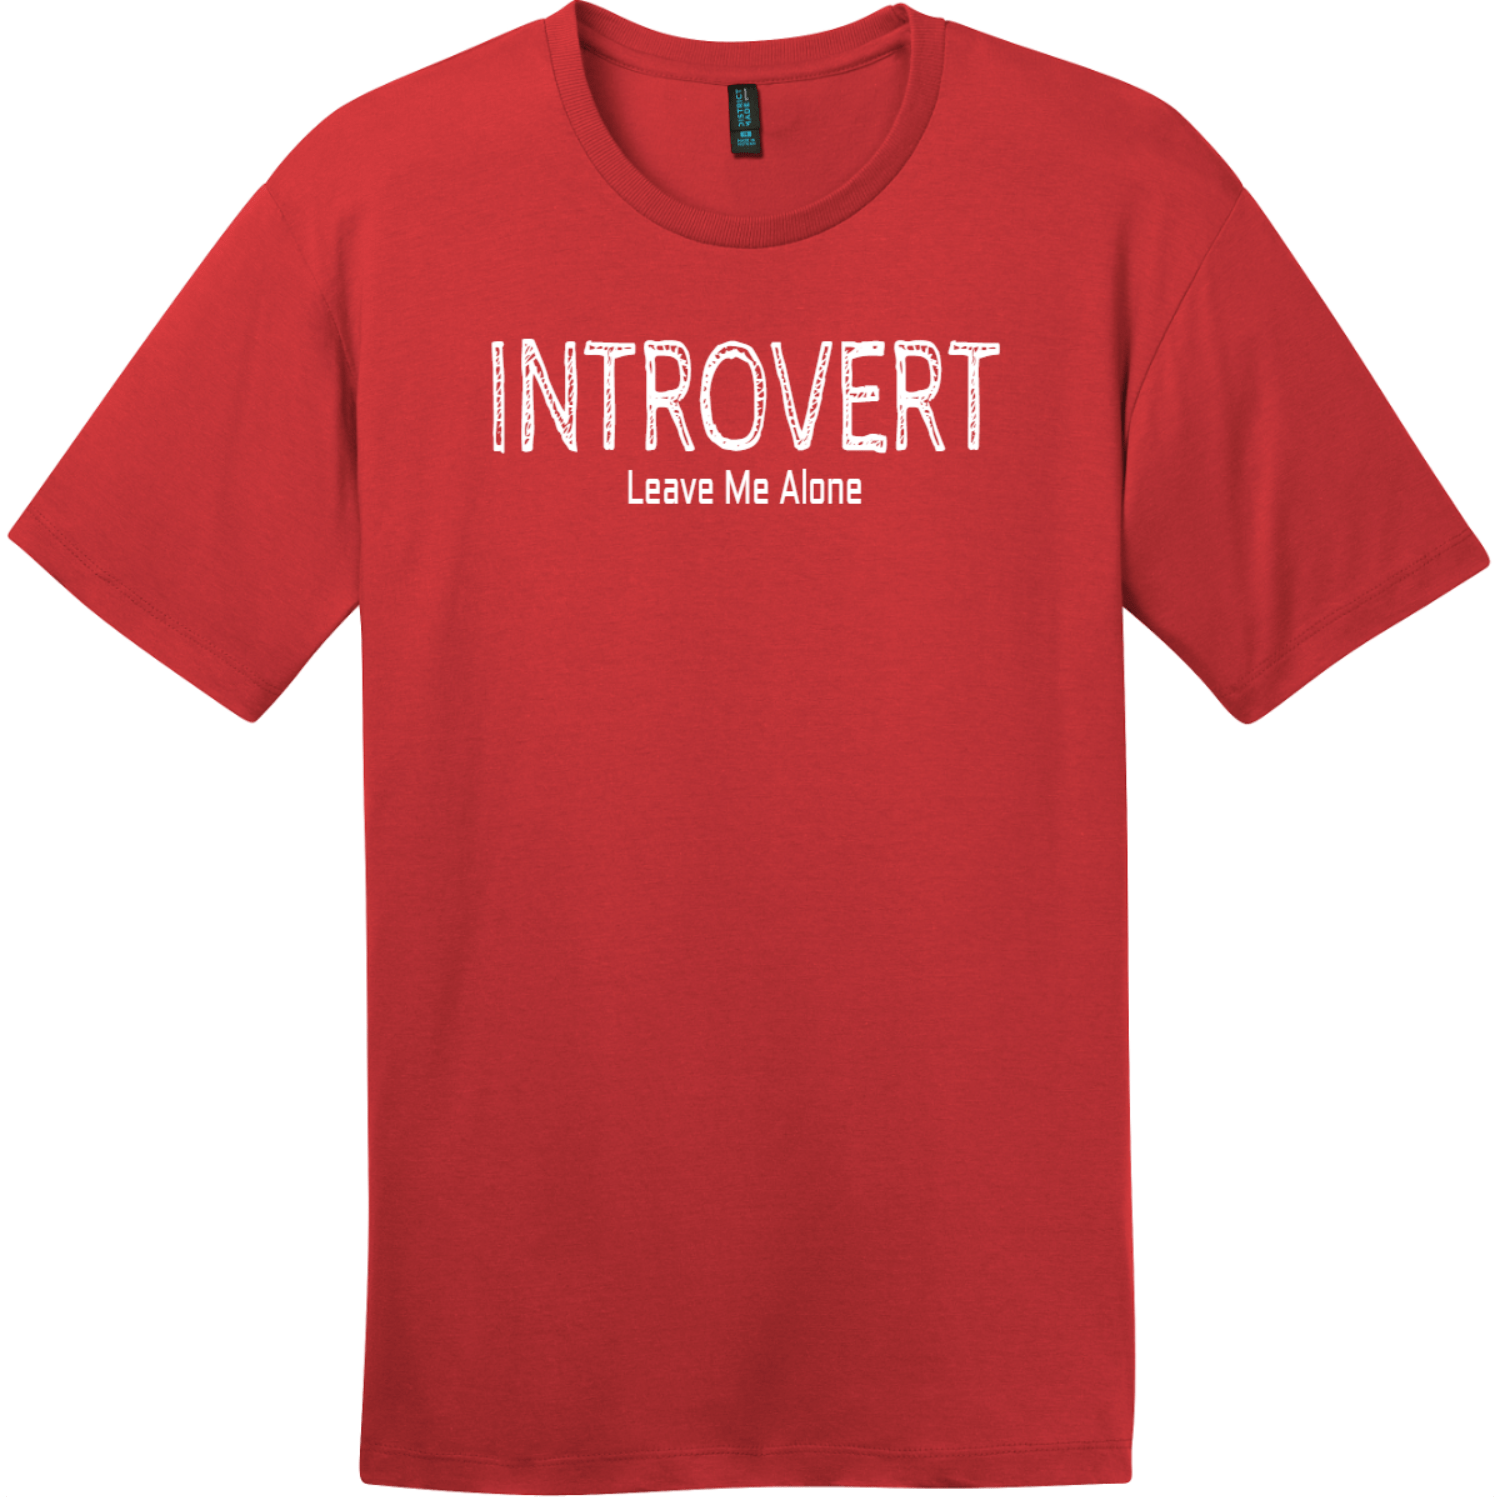 Introvert Leave Me Alone T-Shirt Classic Red District Perfect Weight Tee DT104